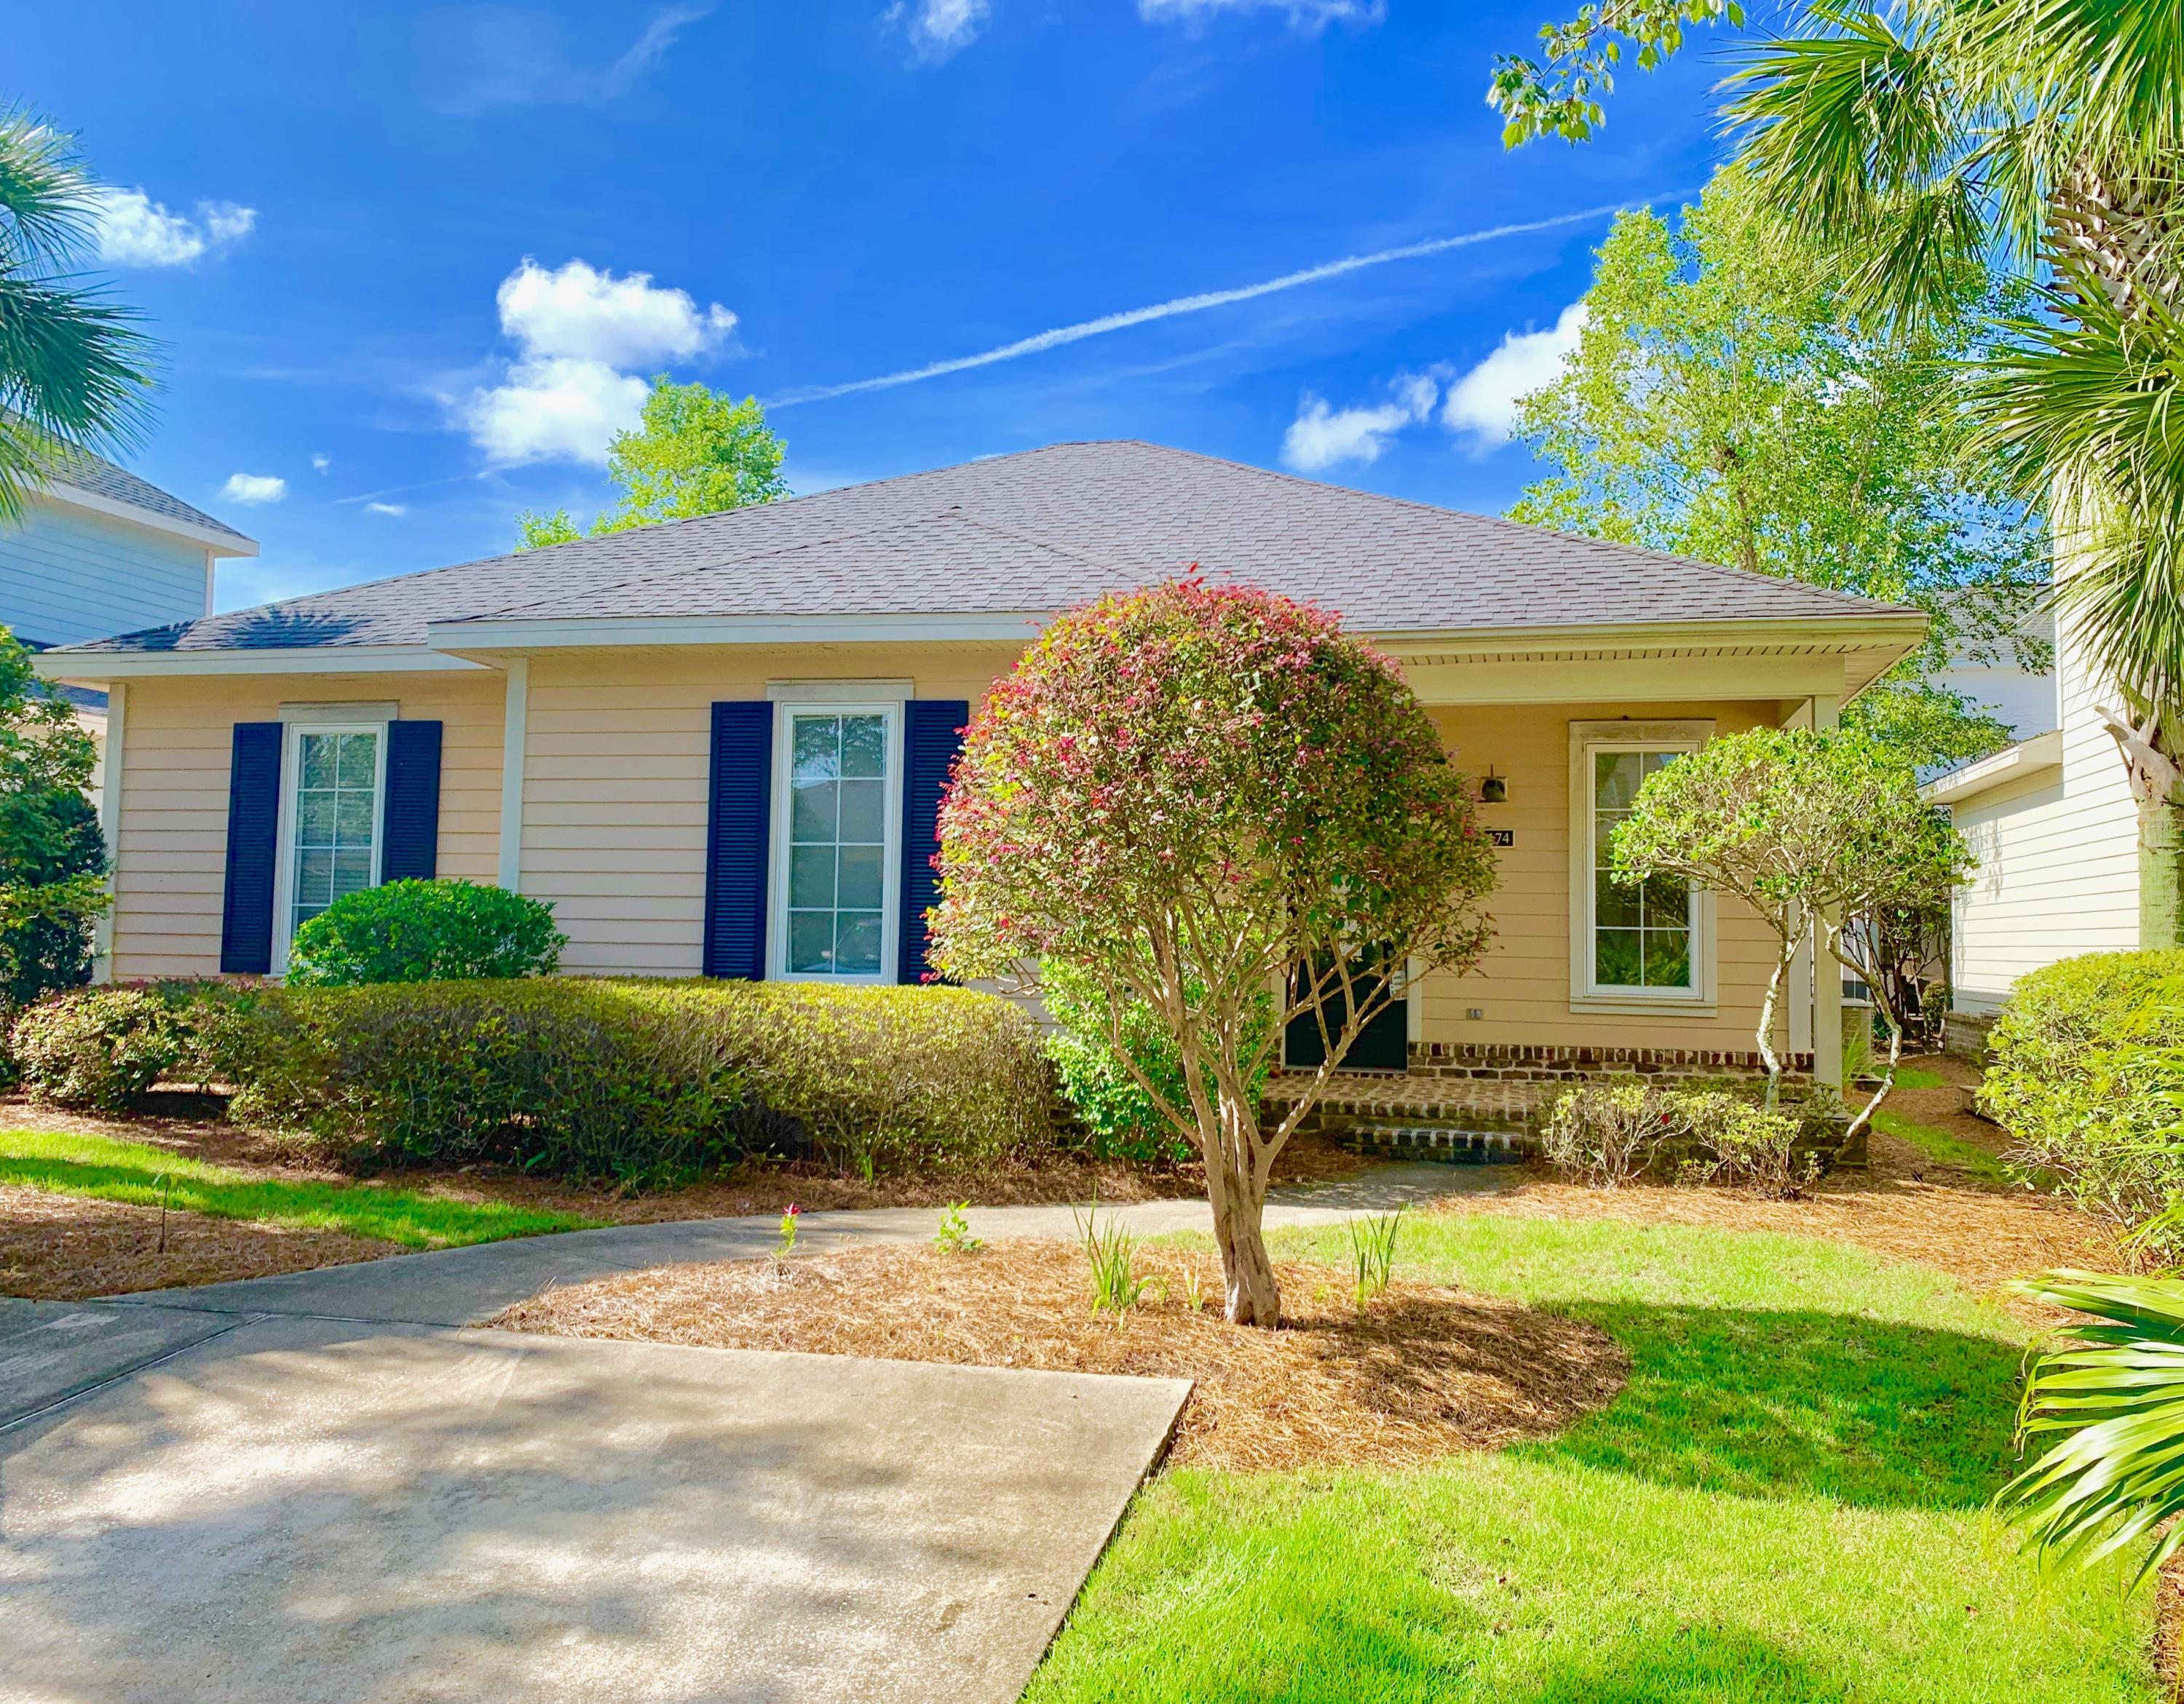 SHORT SALE OPPORTUNITY in the beautiful and highly sought after subdivision of Church Street Village in Santa Rosa Beach. This three-bedroom, two bathroom home provides tile flooring throughout the living room and dining area and carpet in all the bedrooms. This charming 1,397 square-foot cottage designed home is close to all major shopping malls, restaurants, entertainment and most importantly Walton County's beautiful white sandy beaches, which is three-minute drive across highway 98 to the exclusive scenic route 30A, for the closest public beach access. This home was used as a rental home since it was constructed back in 2005. This house will make for a magnificent primary residence or rental property. Interior photos coming soon.